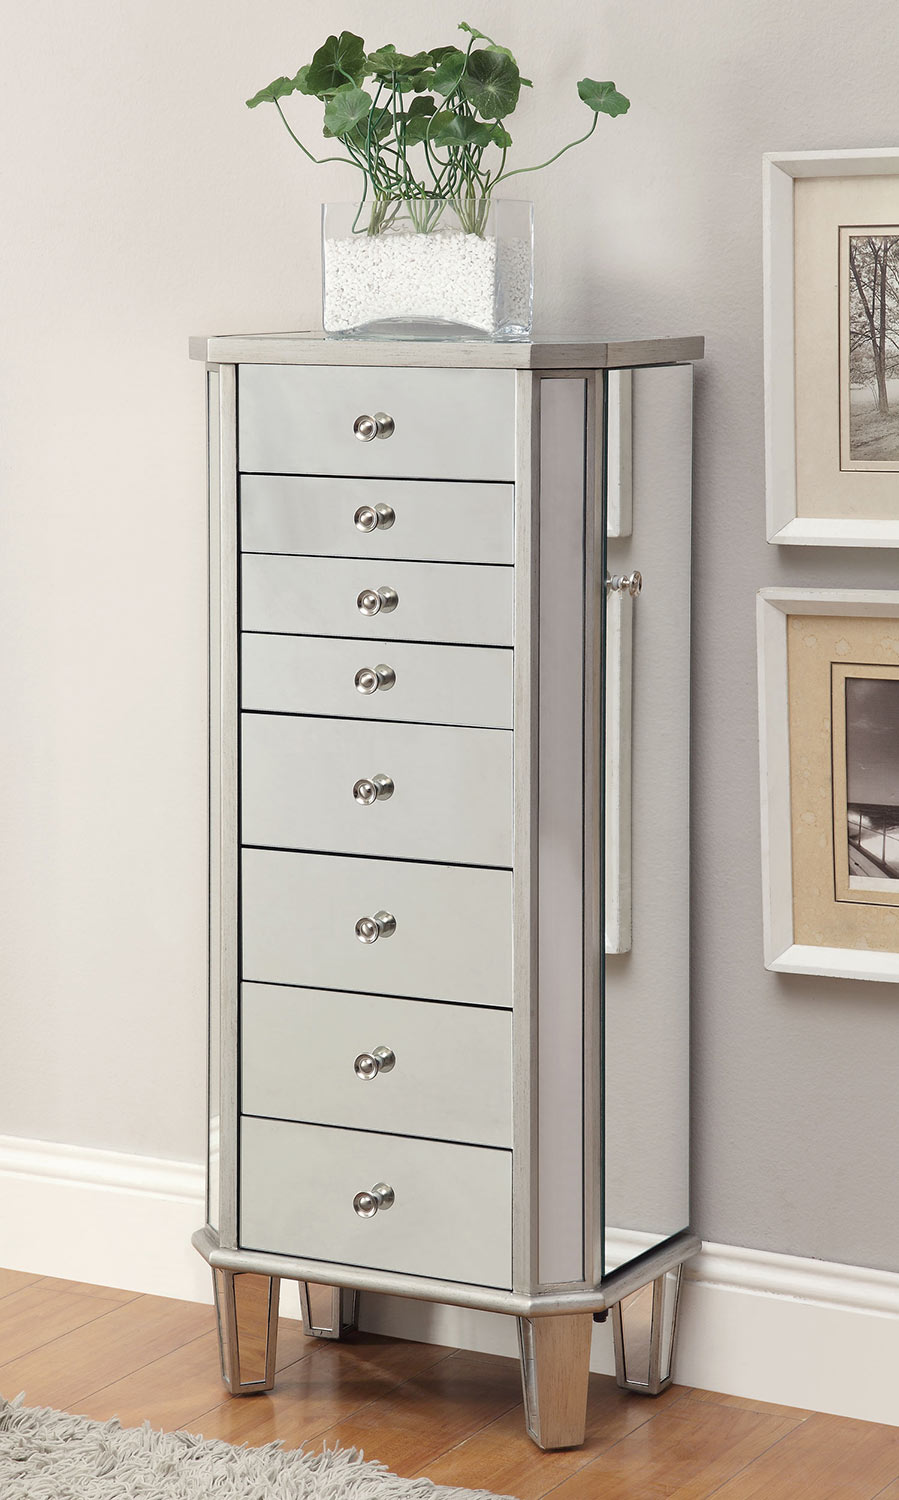 Coaster 903808 Jewelry Armoire - Antique Silver